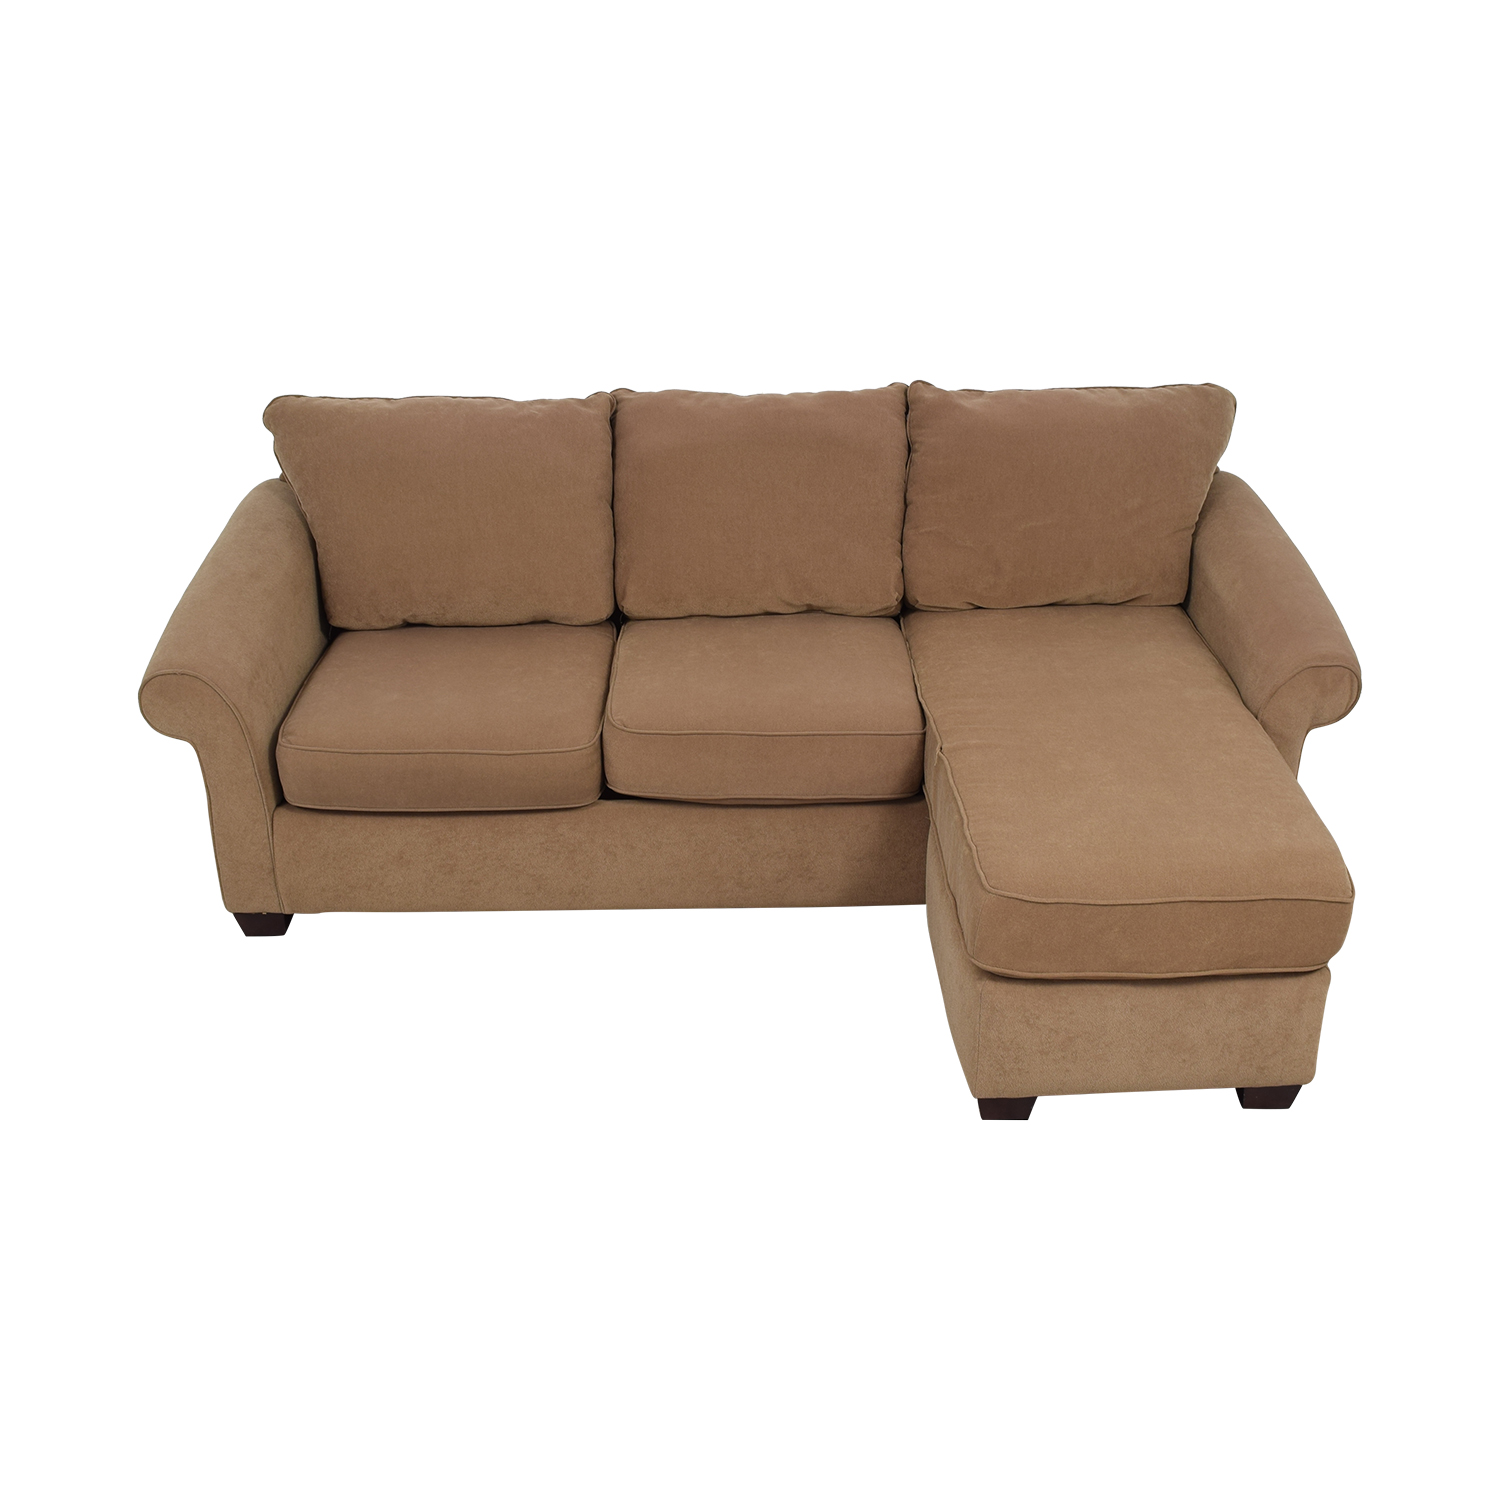 Costco Costco Brown Chaise Sectional dimensions